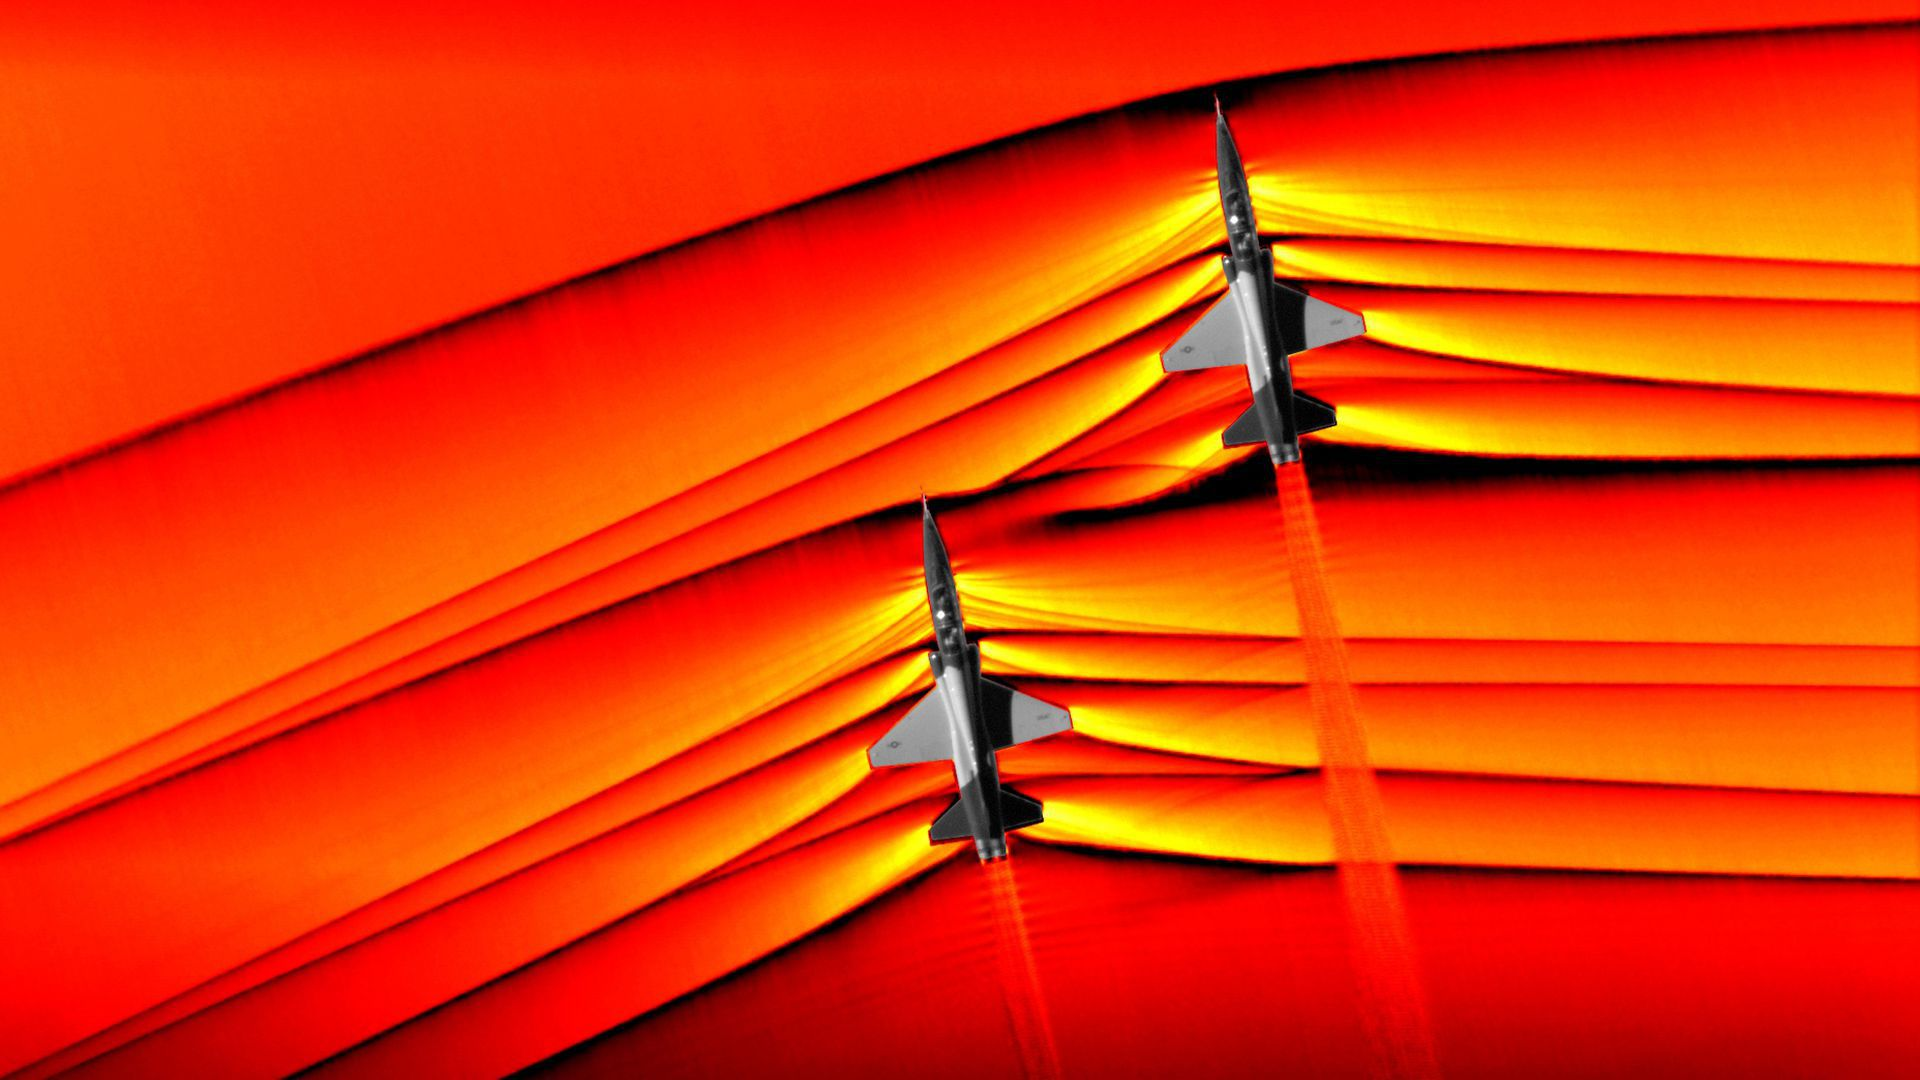 Airplanes breaking the sound barrier.